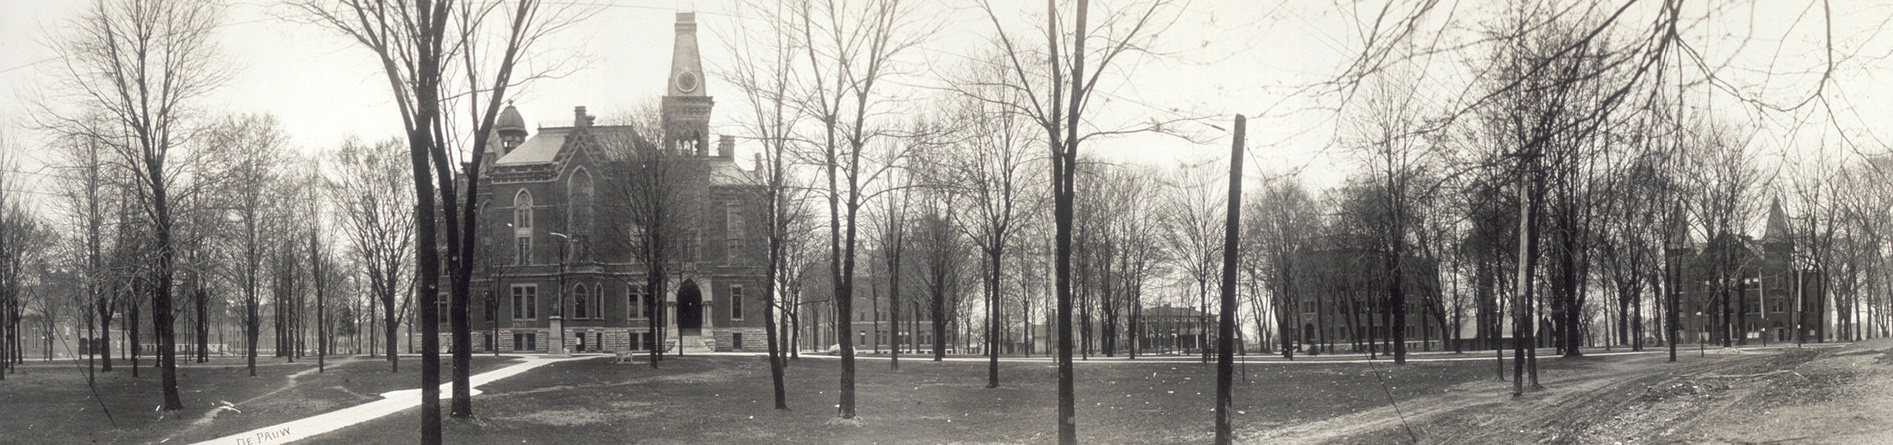 Greencastle and DePauw's shared history dates back to the early 19th century. Photo credits at bottom.